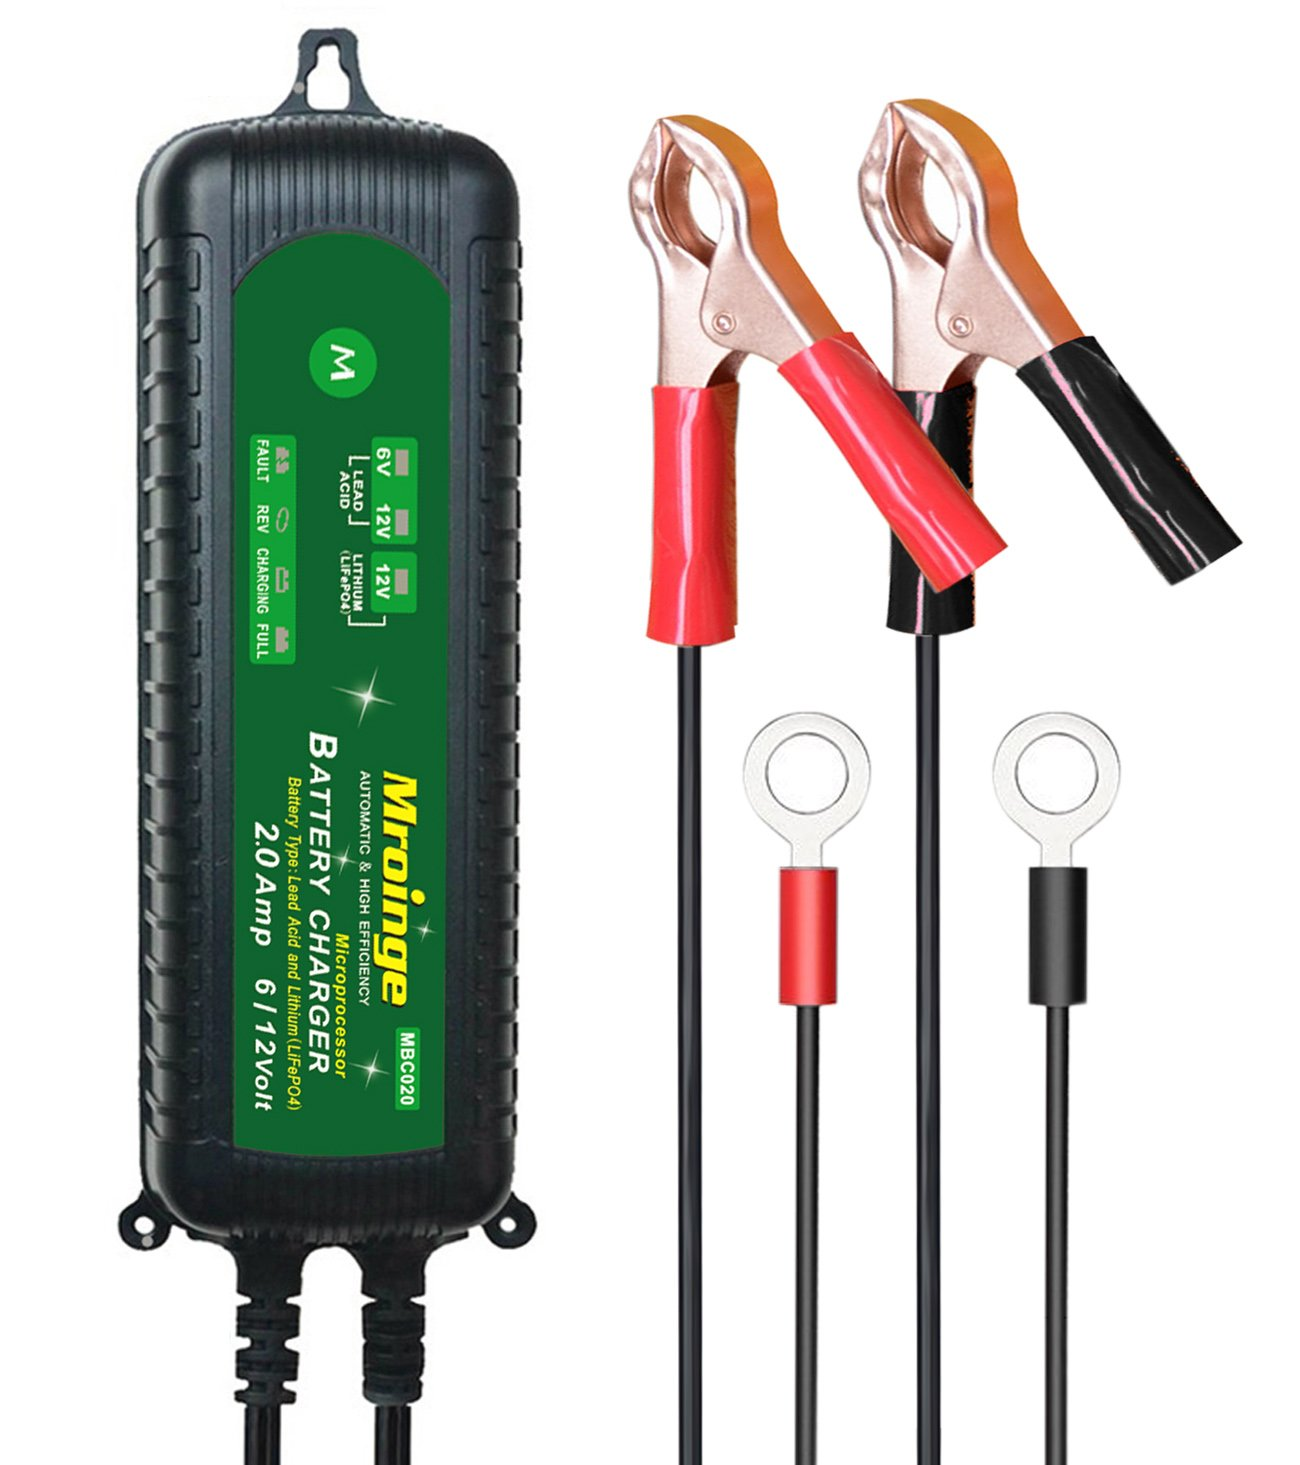 Mroinge MBC020 12V/6V 2A Fully Automatic Waterproof Battery Charger/Maintainer for Normal Lead Acid, Sealed, Leisure, AGM, Gel,Deep-cycle or 12V-Lithium(LiFePO4) Batteries